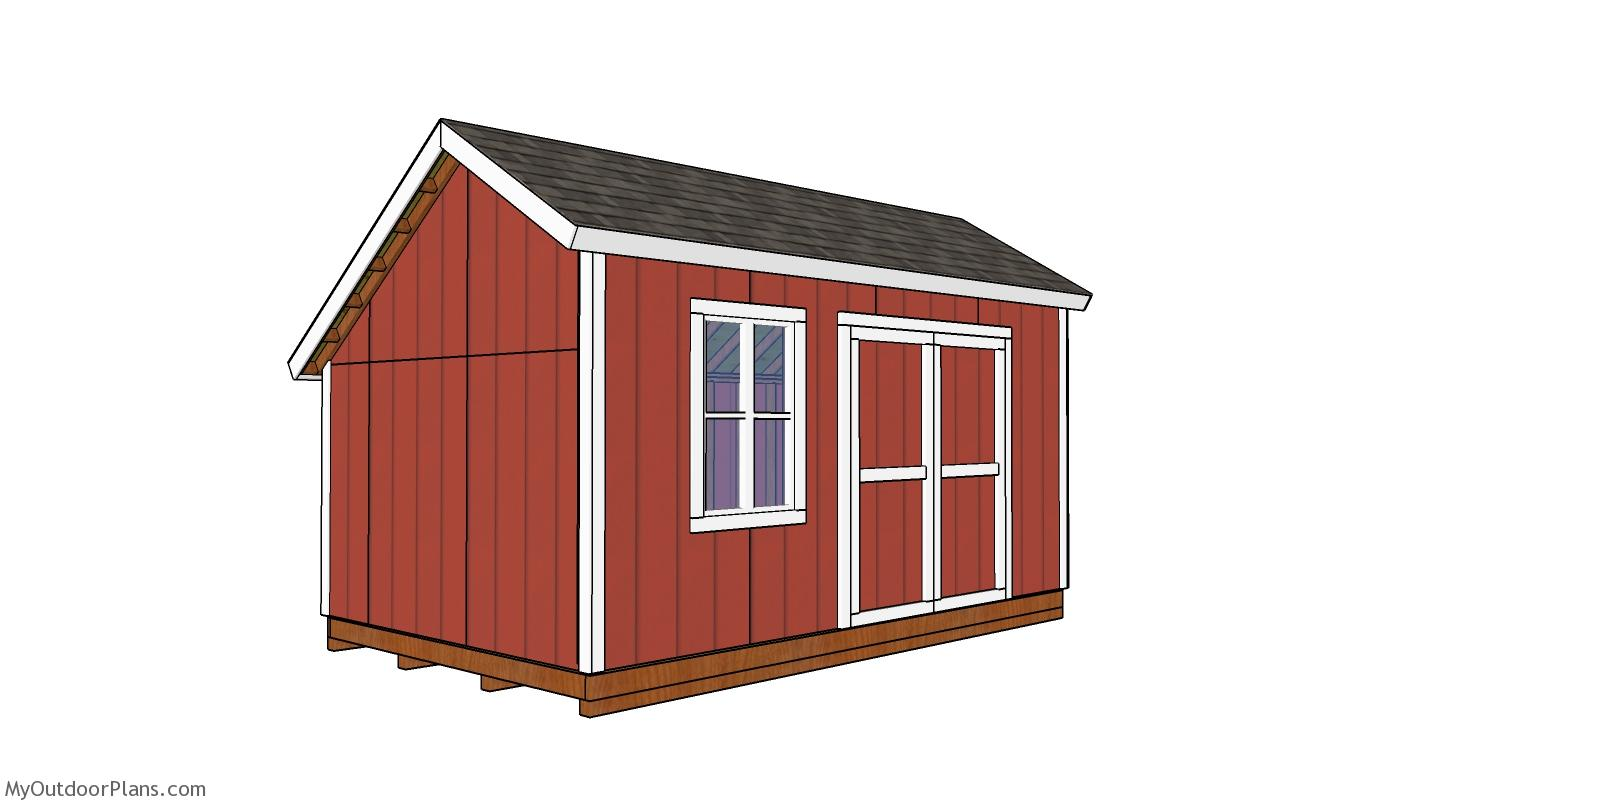 10x16 Saltbox Shed - Free DIY Plans